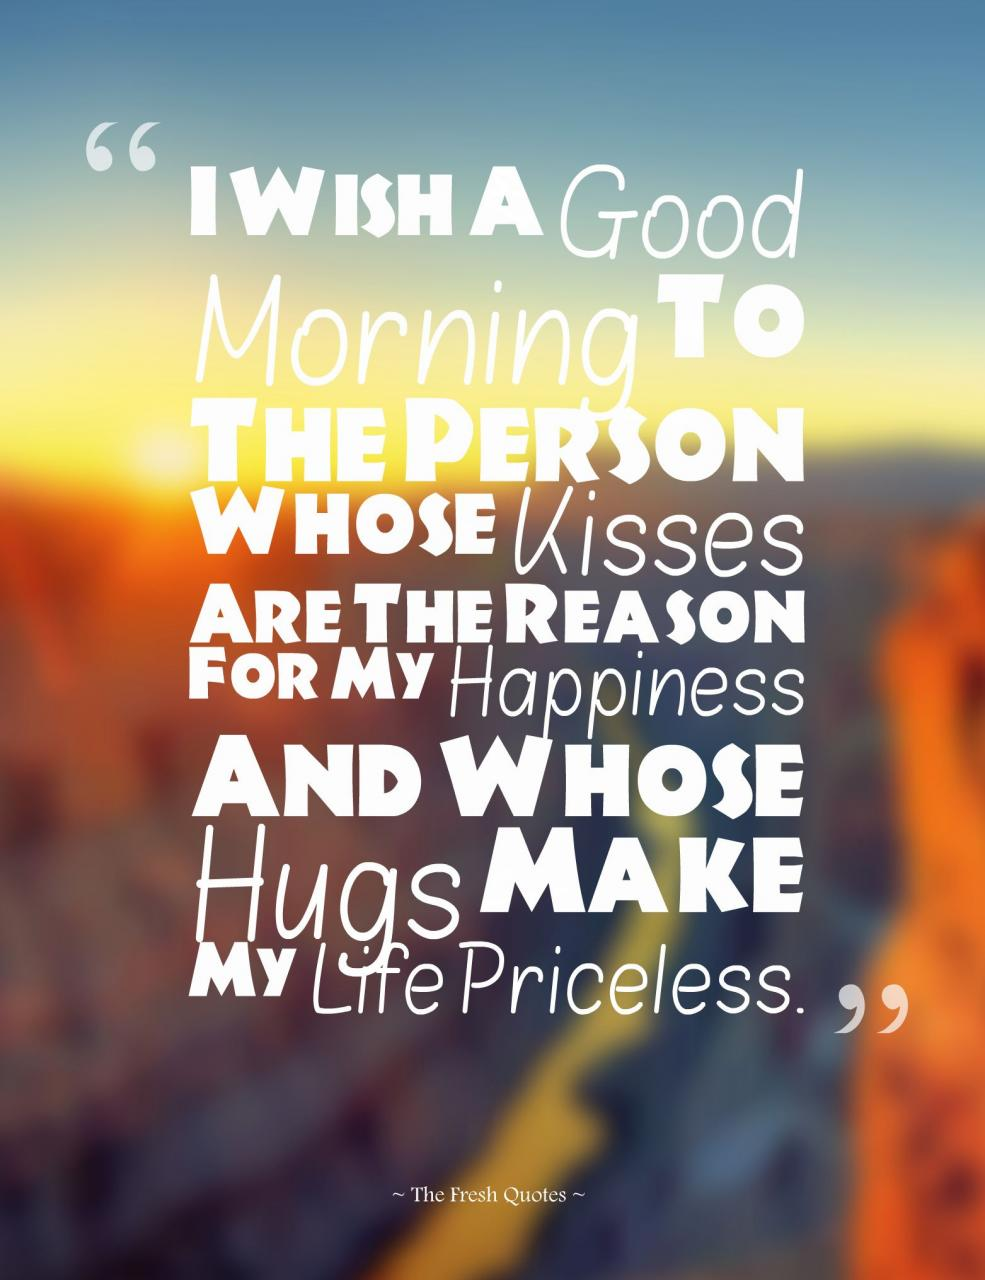 I Wish A Good Morning To The Person Whose Kisses Are The Reason For My Happiness And Whose Hugs Make My Life Priceless